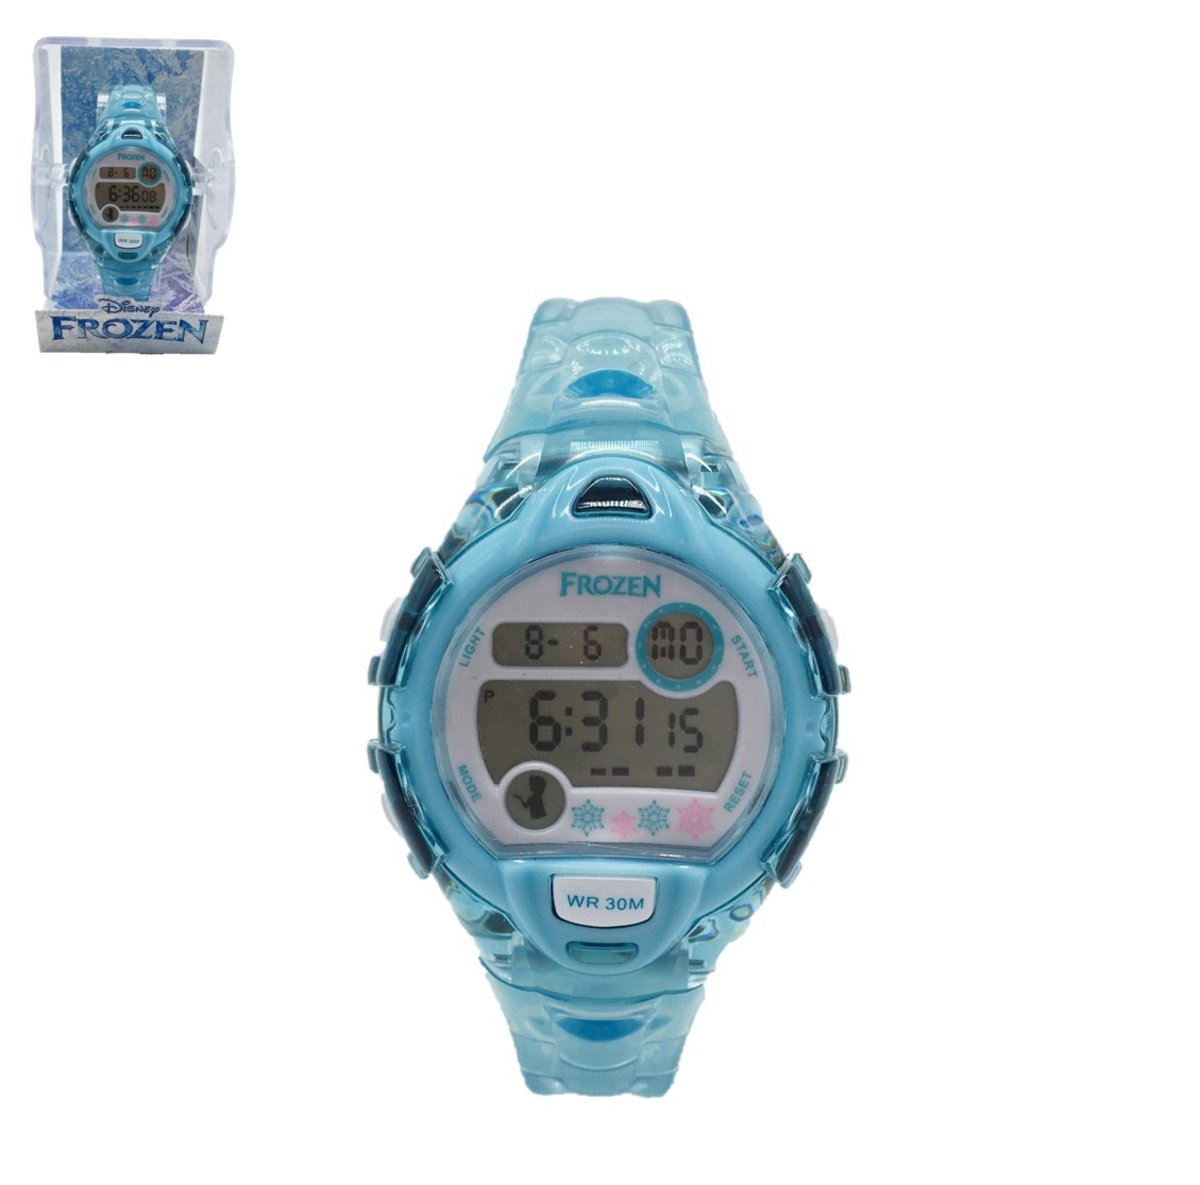 Disney--digital watch-blue (Licensed by Disney)